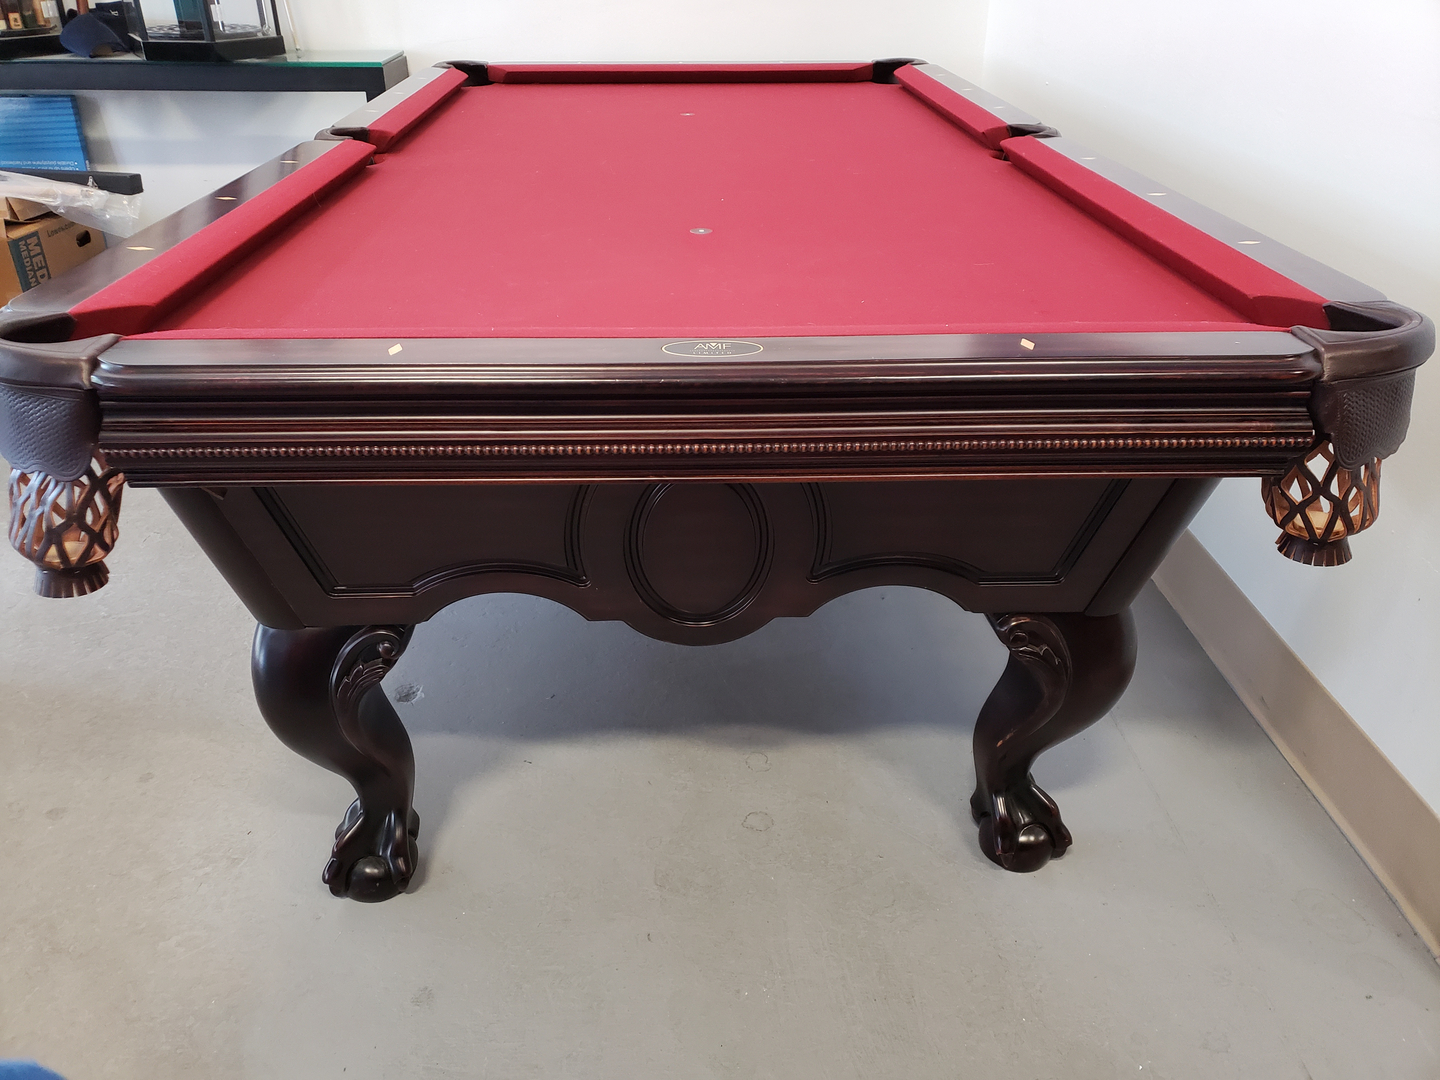 Refurbished Tables - Claw foot pool table